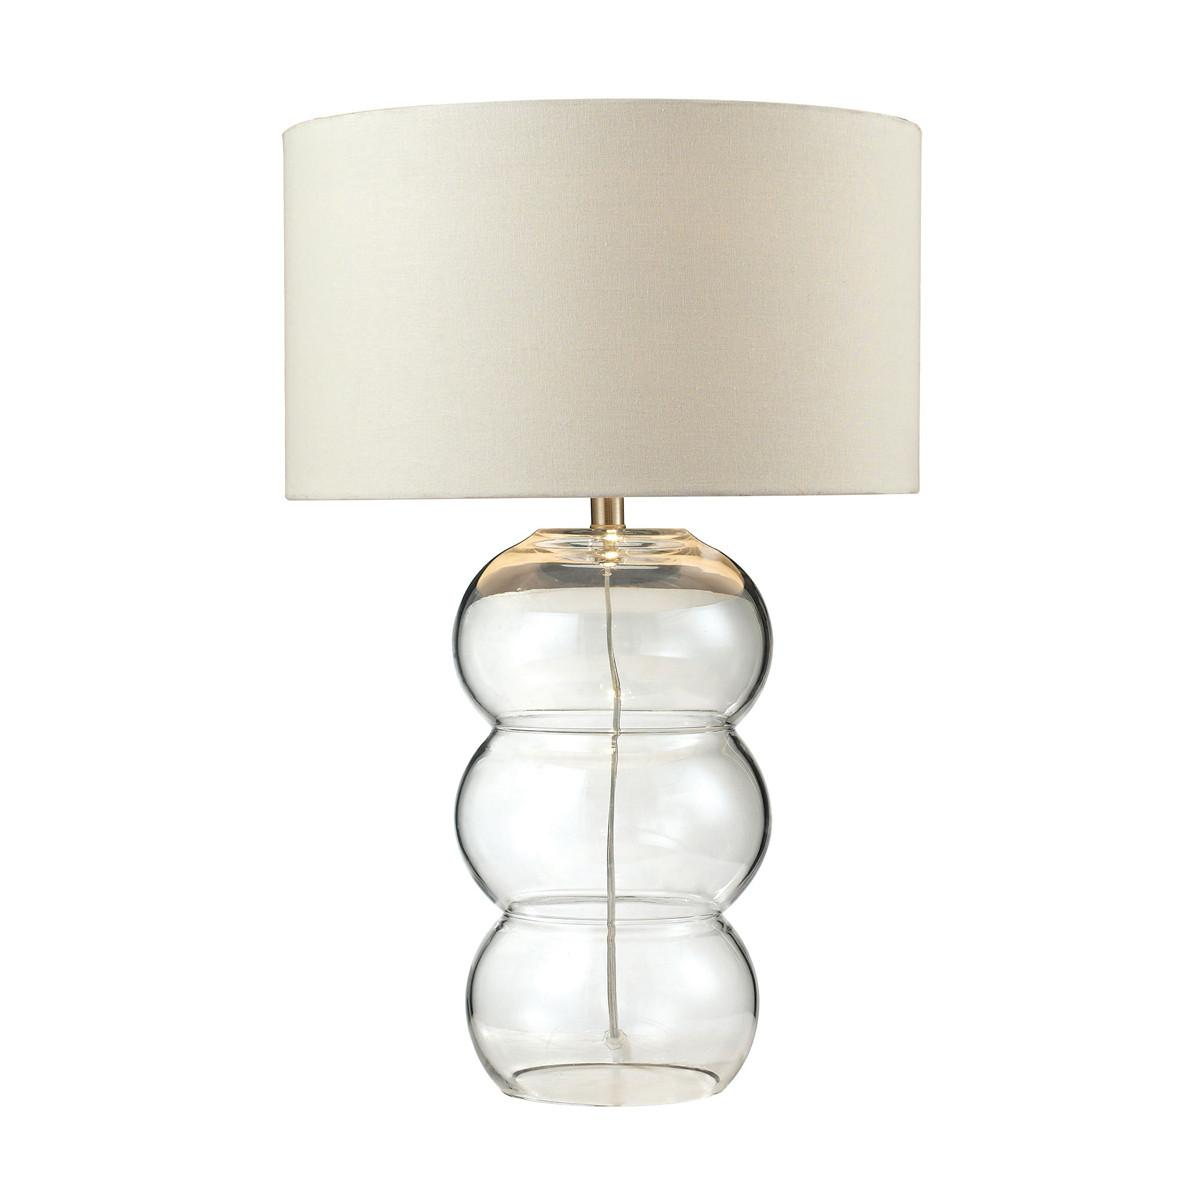 Dimond Lighting Ring Lamp Pearlescent Glass